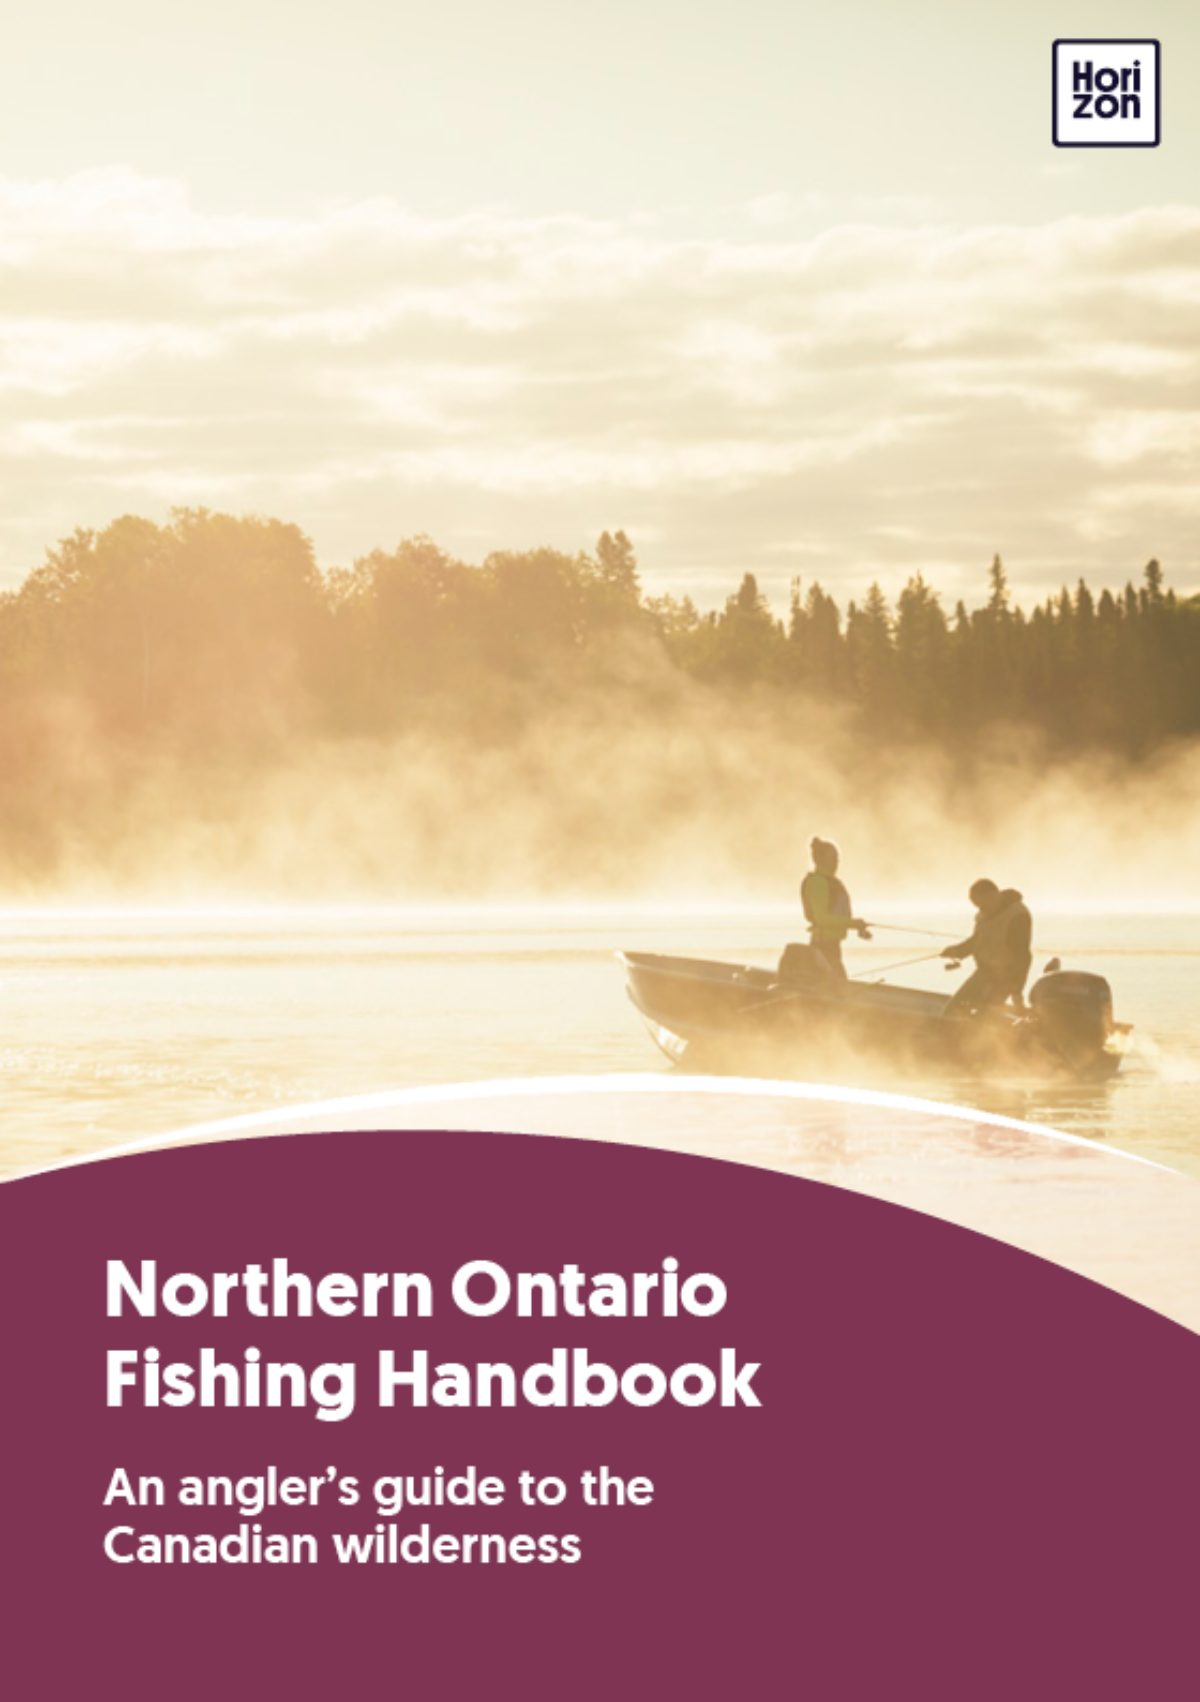 Northern Ontario Fishing Handbook